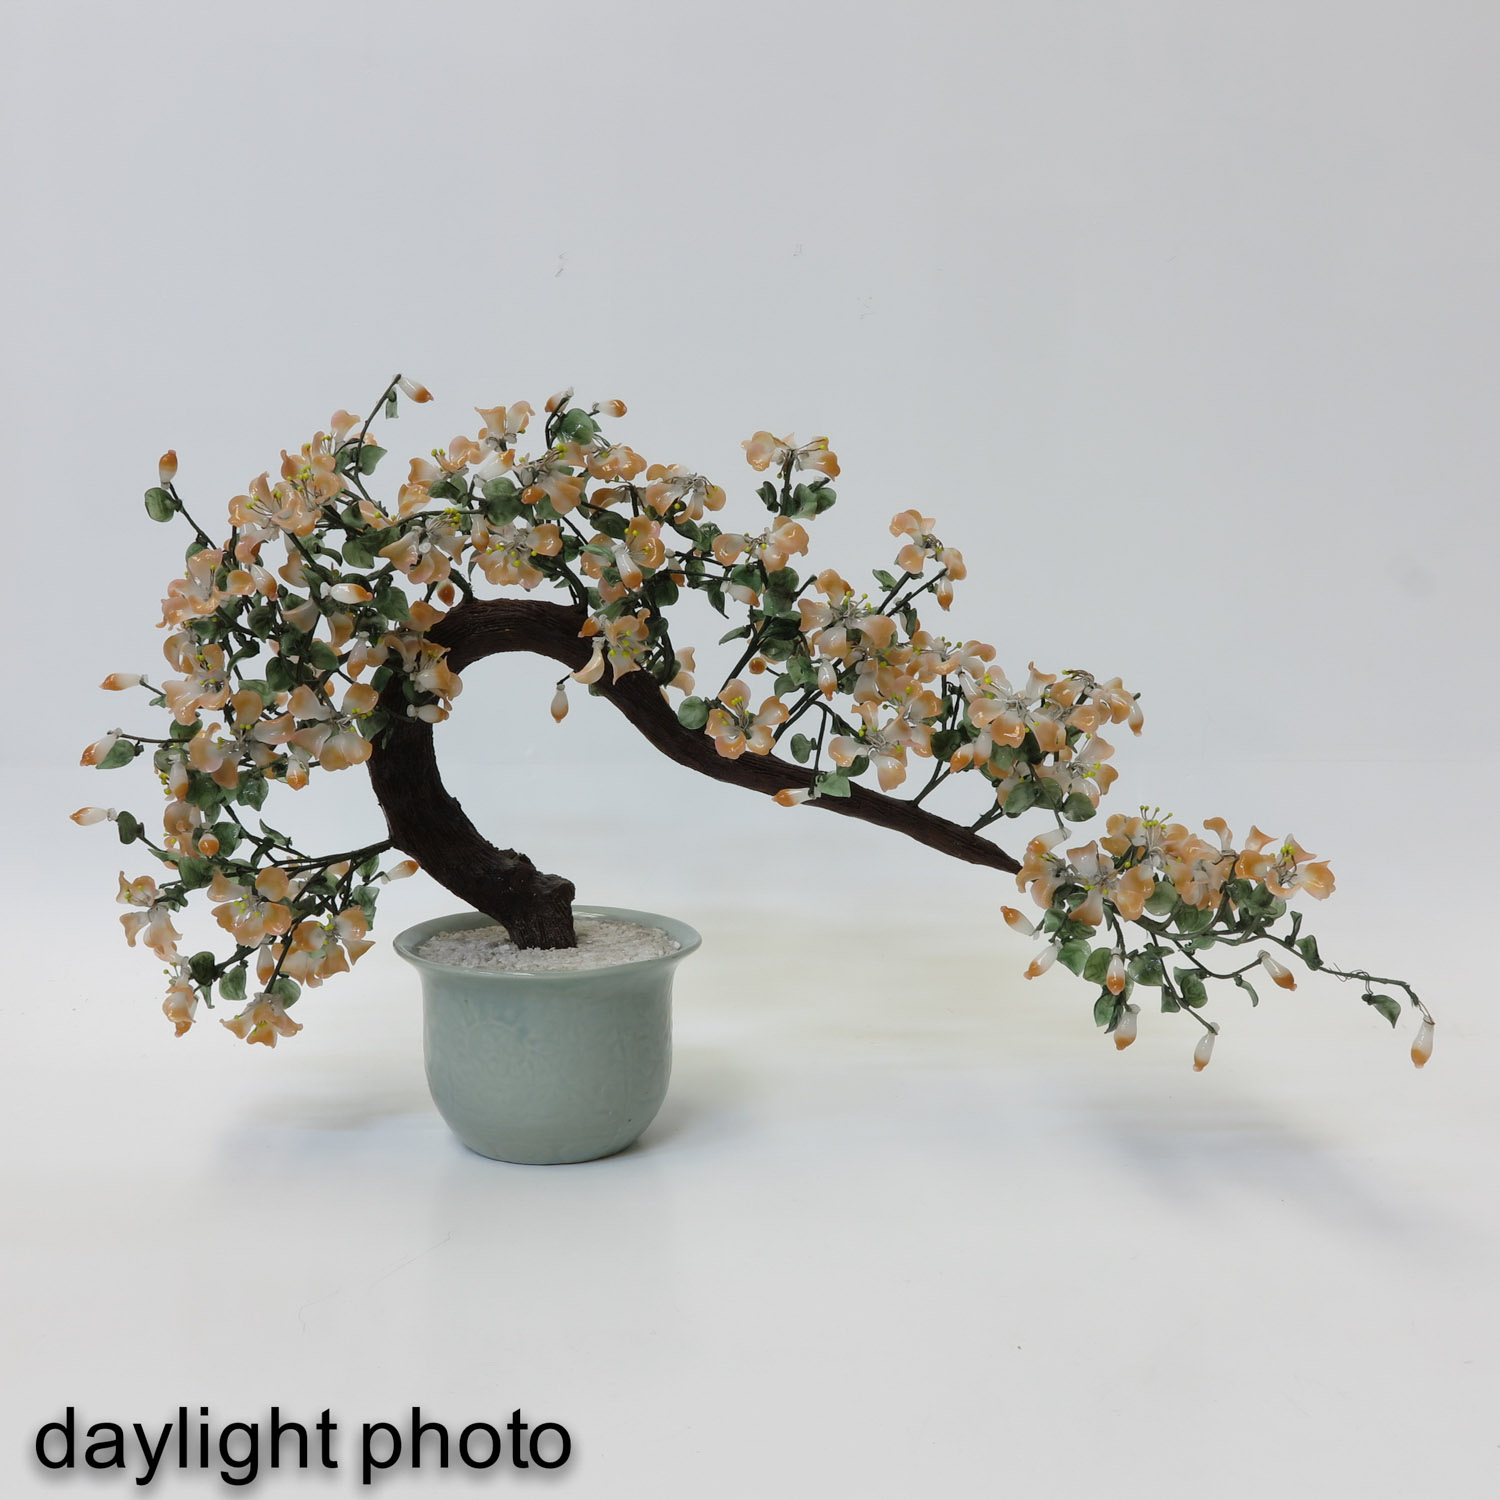 A Collection of Floral Arrangements - Image 10 of 10